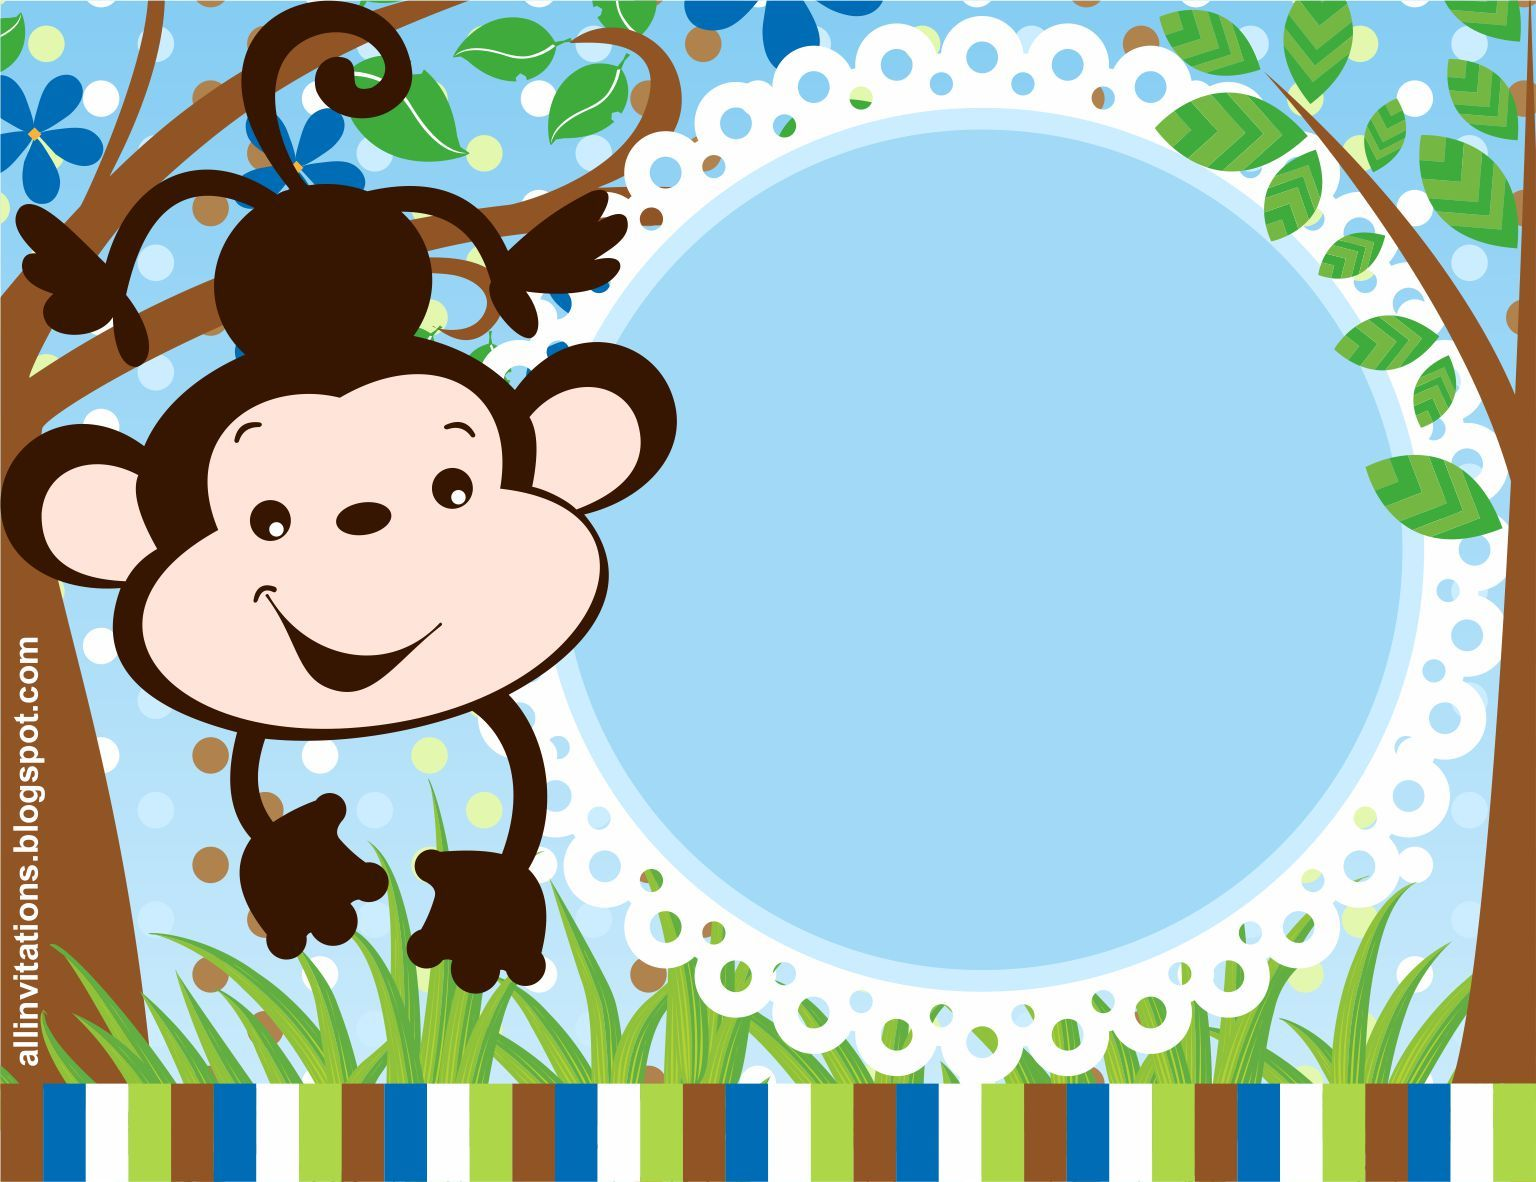 Changuitos Para Dibujar invitación changuito | baby showers de safari, invitaciones